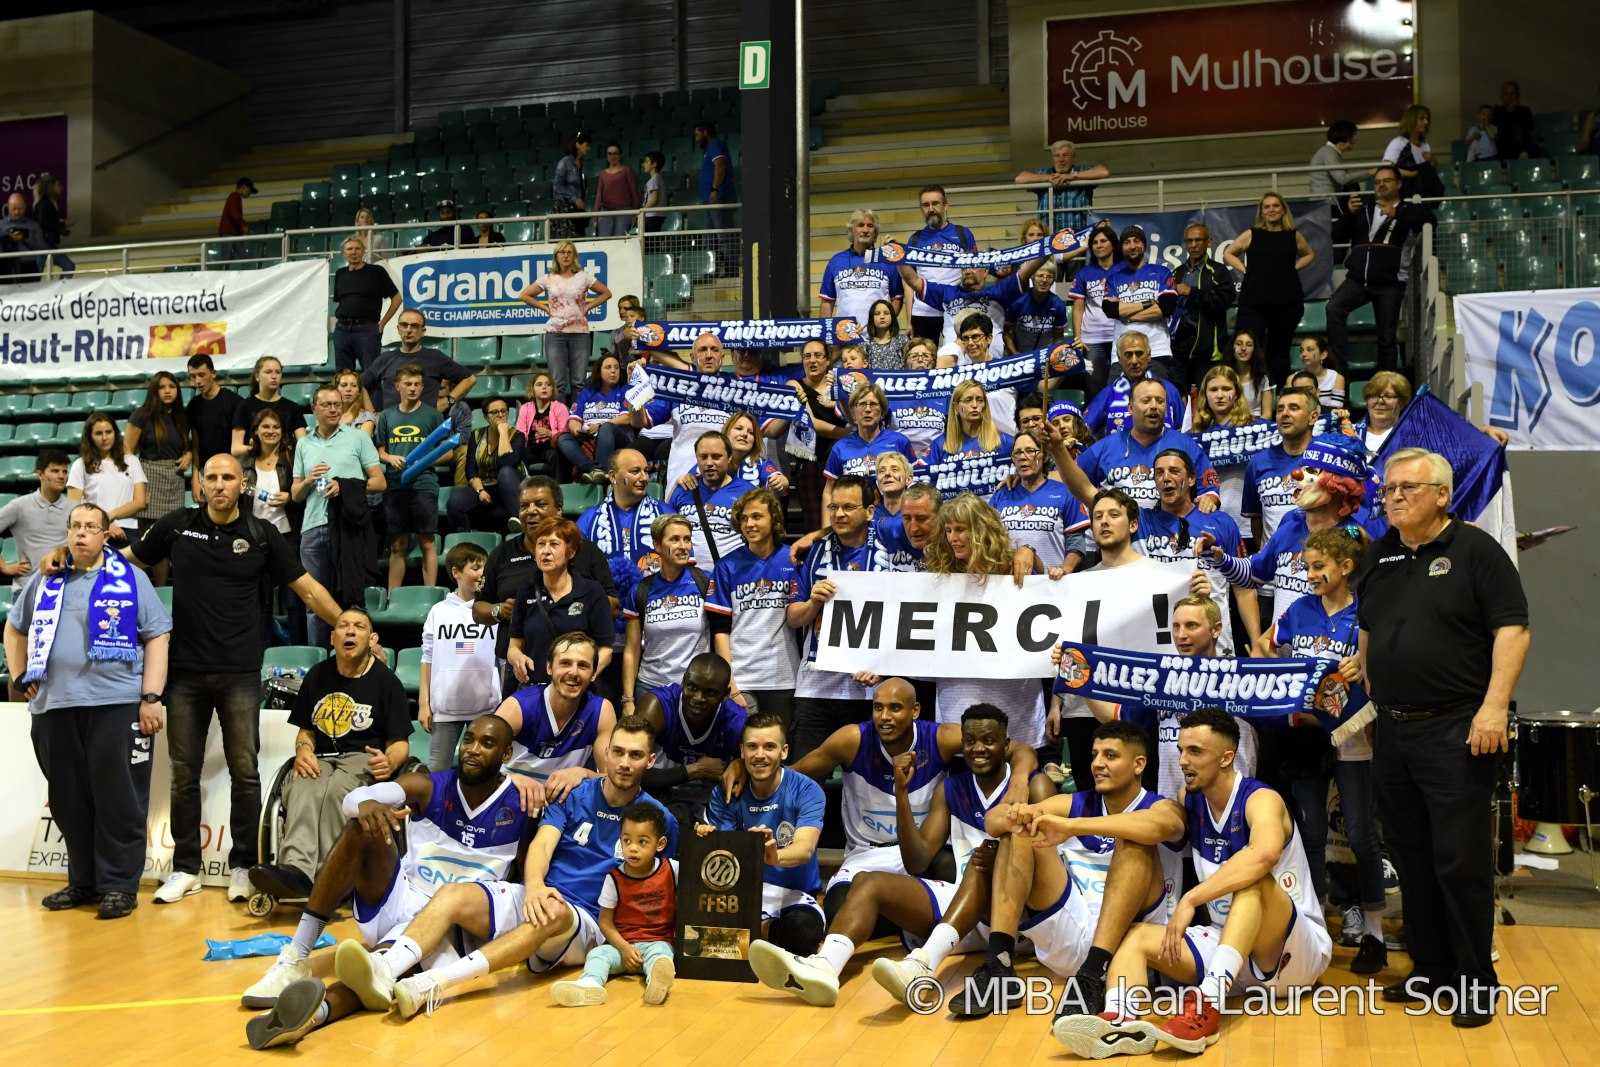 [J.22] Beaujolais Basket - FC MULHOUSE : 99 - 91 - Page 4 Merci